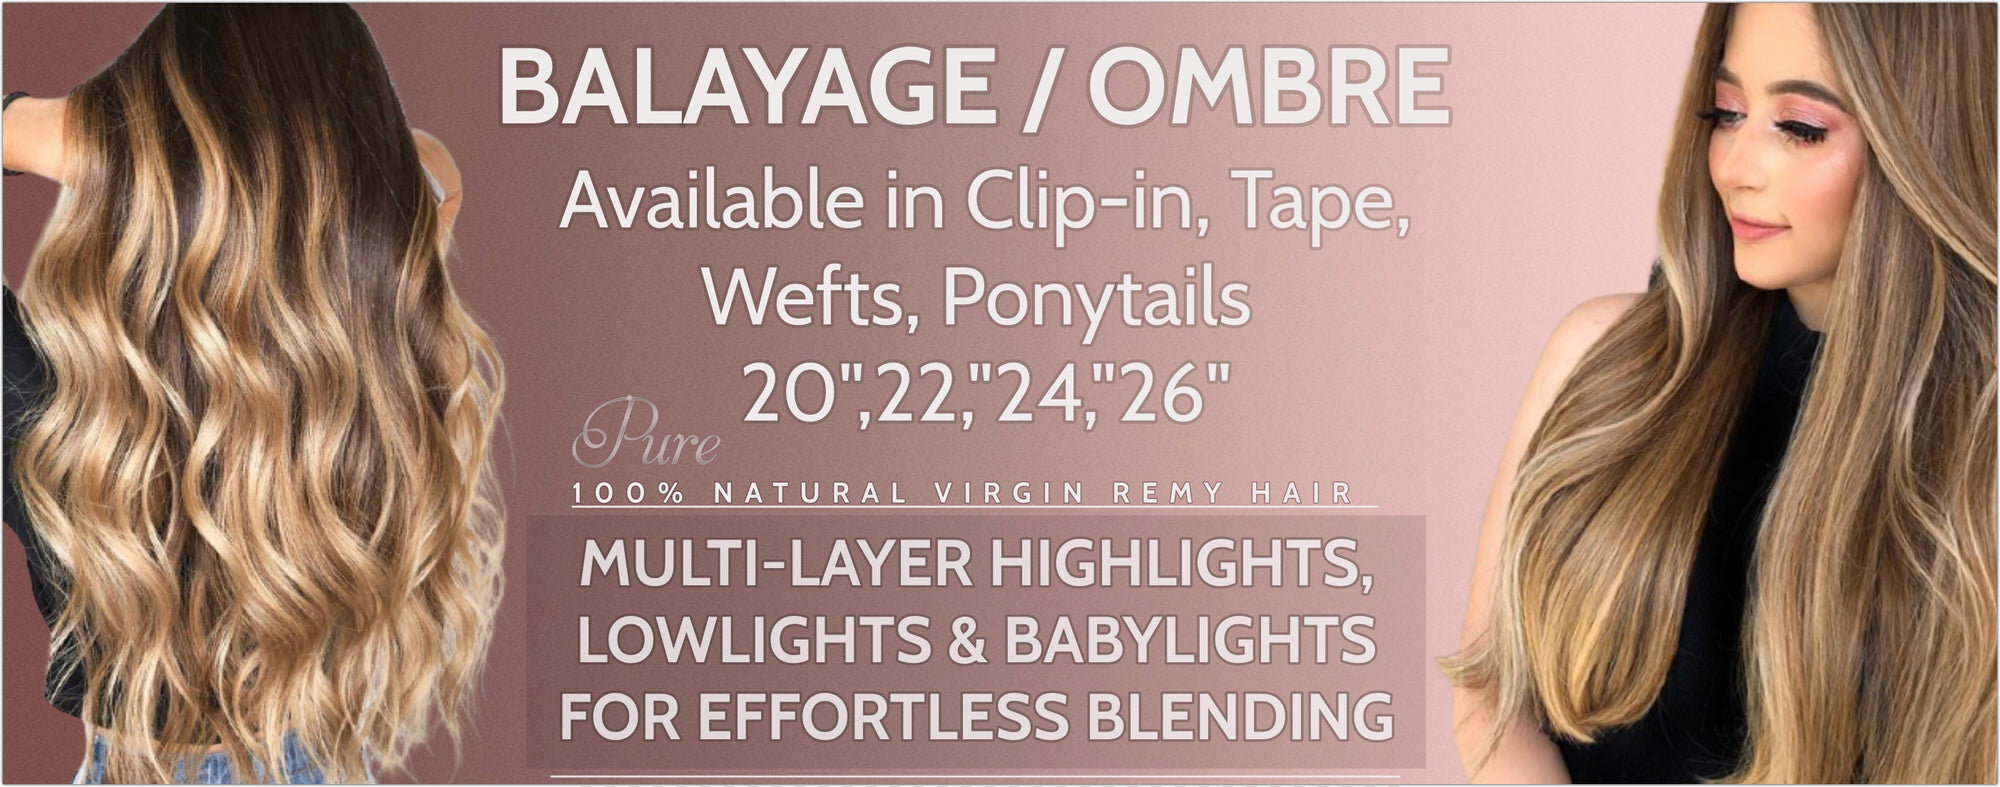 Balayage and Ombre tape hair extensions